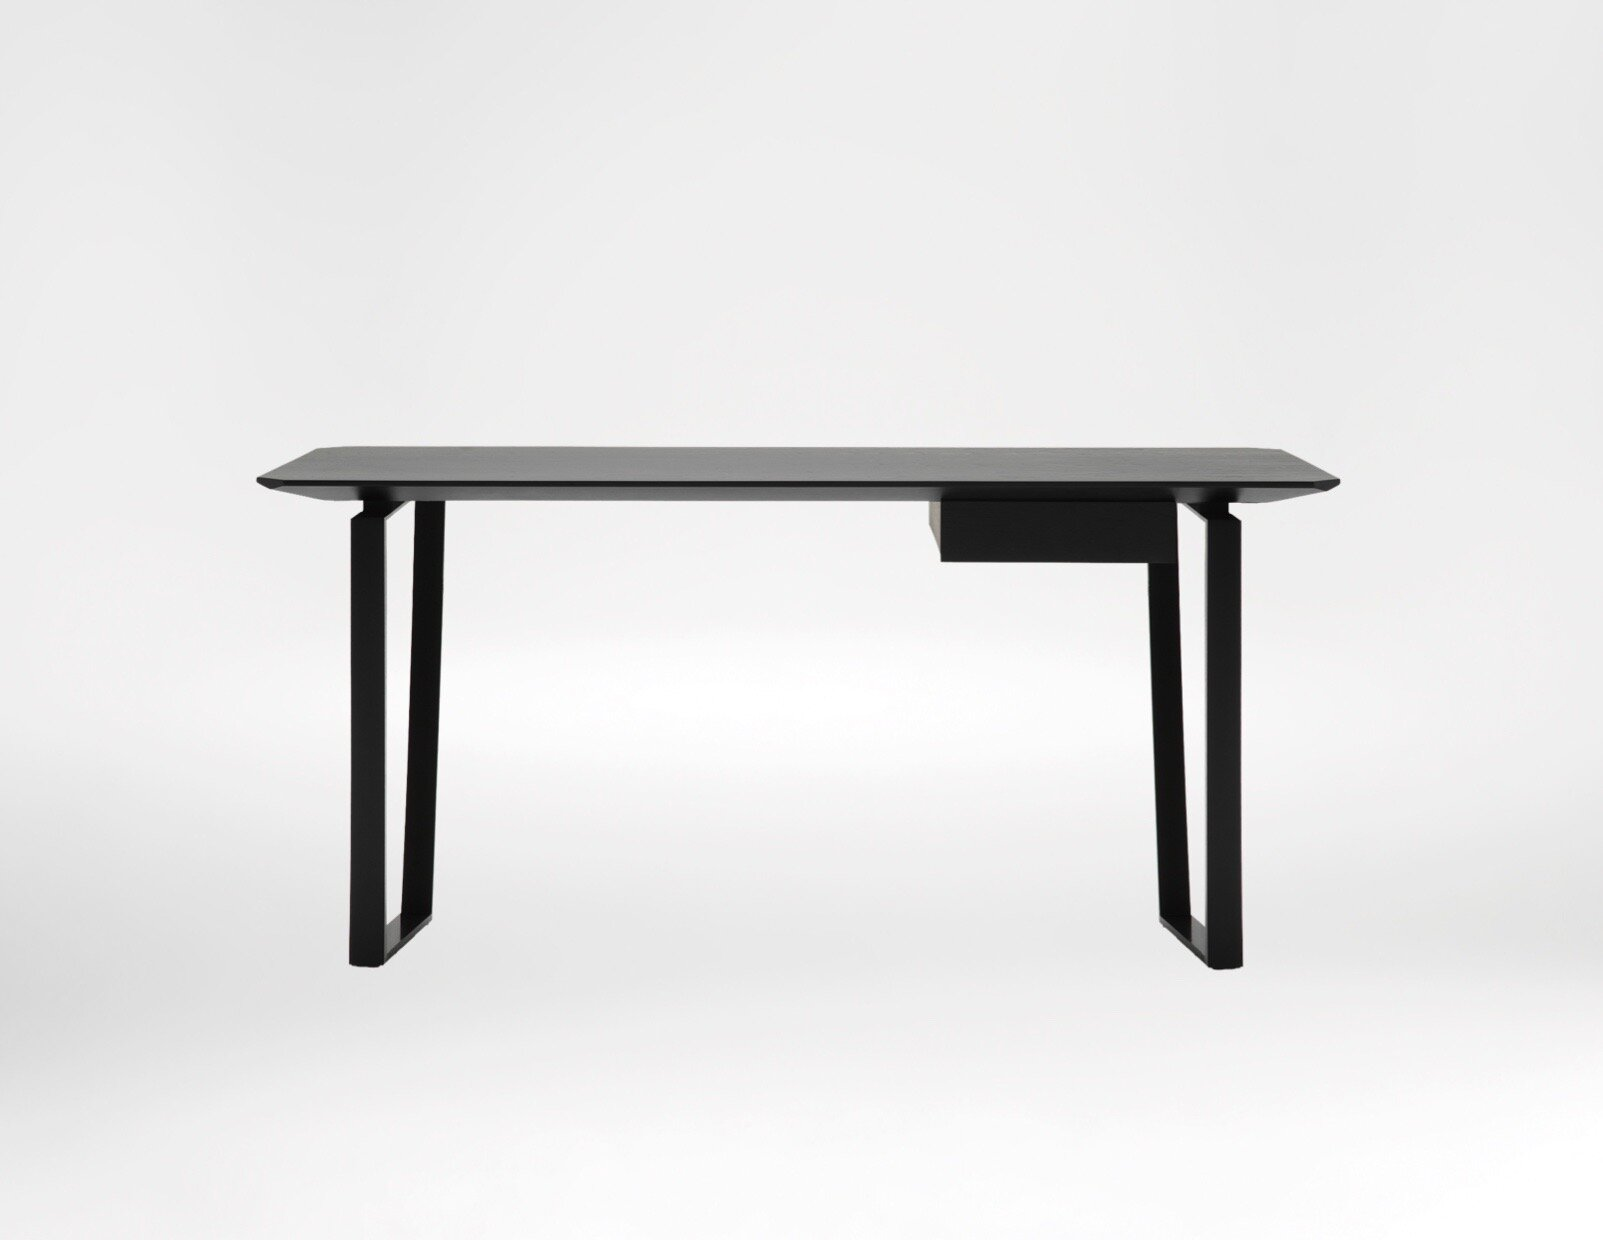 Verge Desk - Spectacularly sleek look with distinguished character.